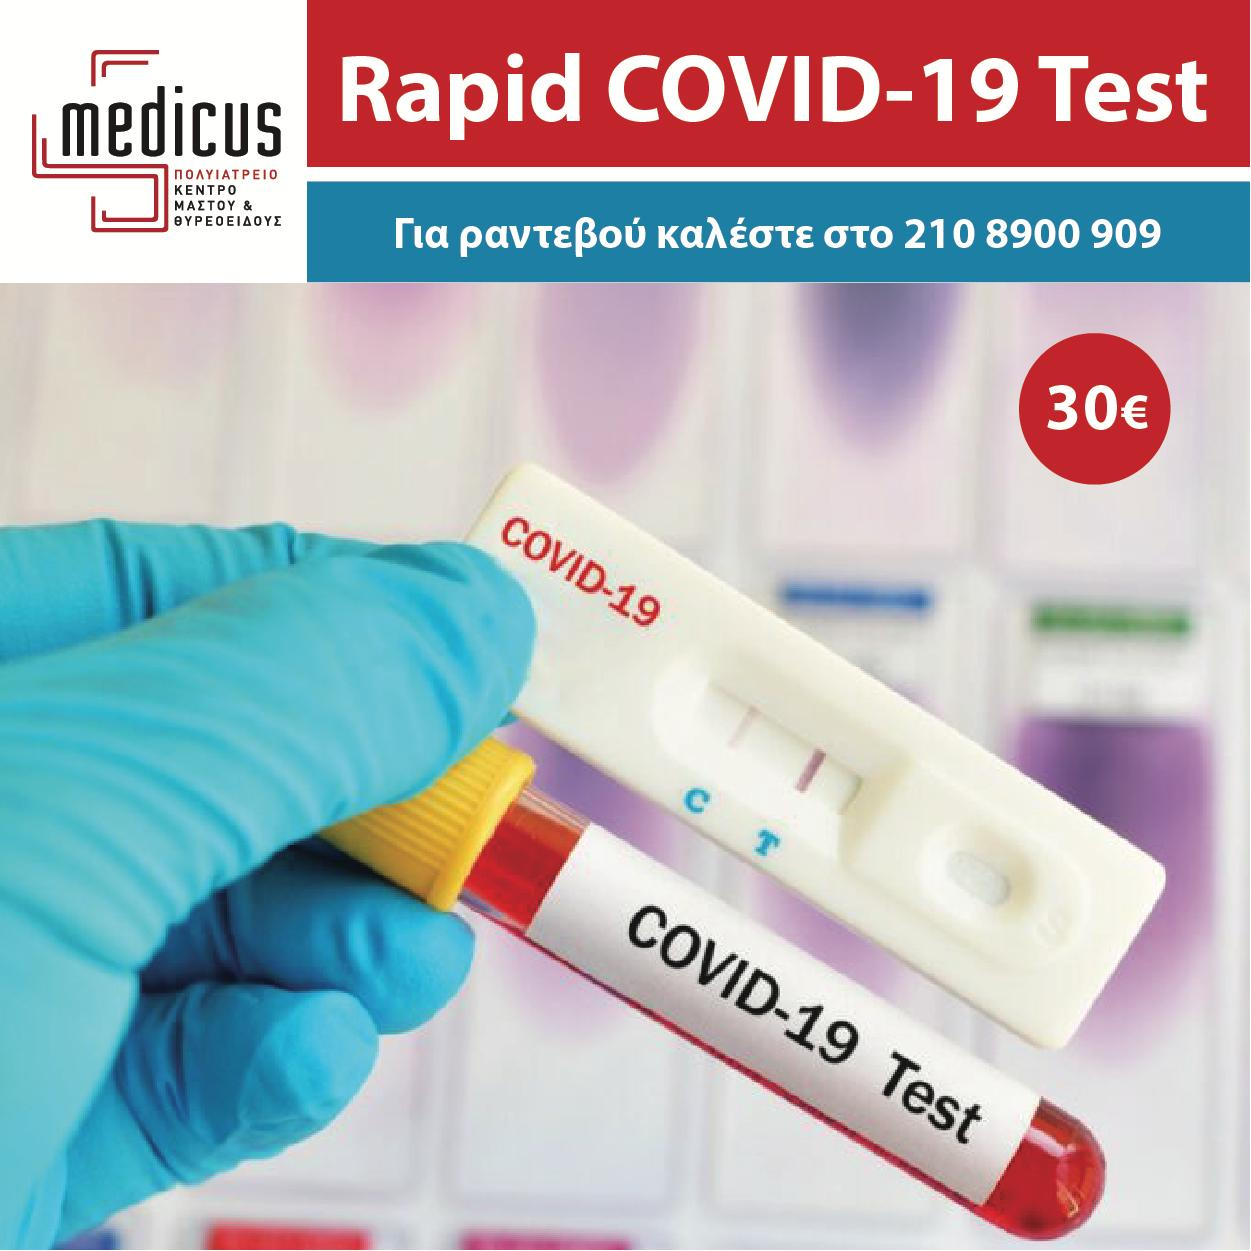 Rapid COVID-19 Testing package